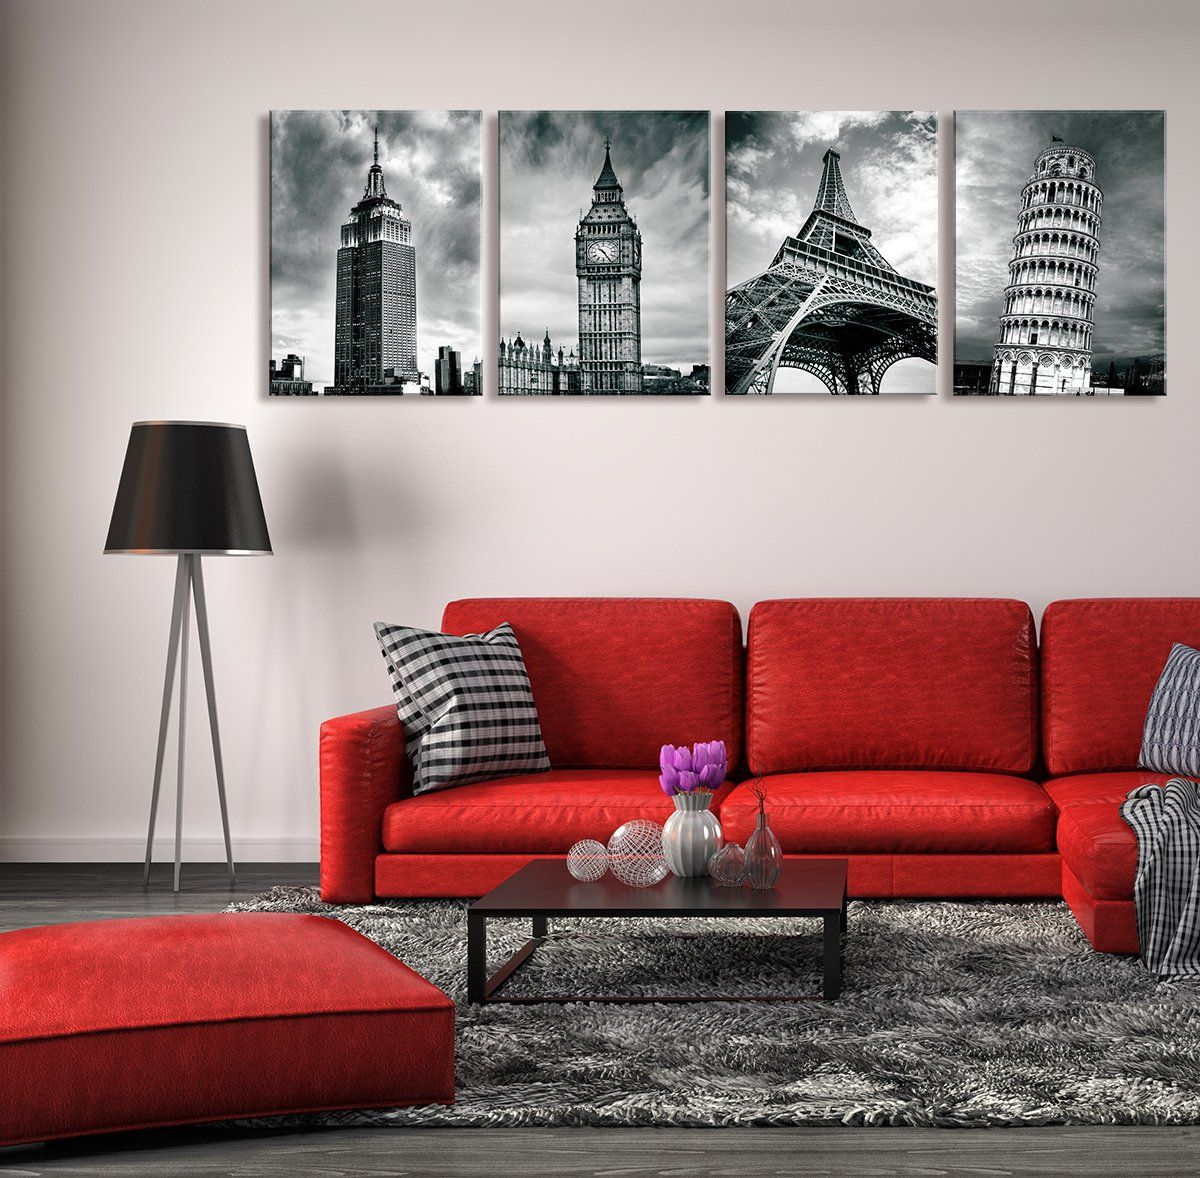 Black And White Architectures Photos Wall Art New York Empire State Building Uk London Big Ben Eiffel Photo Wall Art Eiffel Tower Pictures Architecture Photo